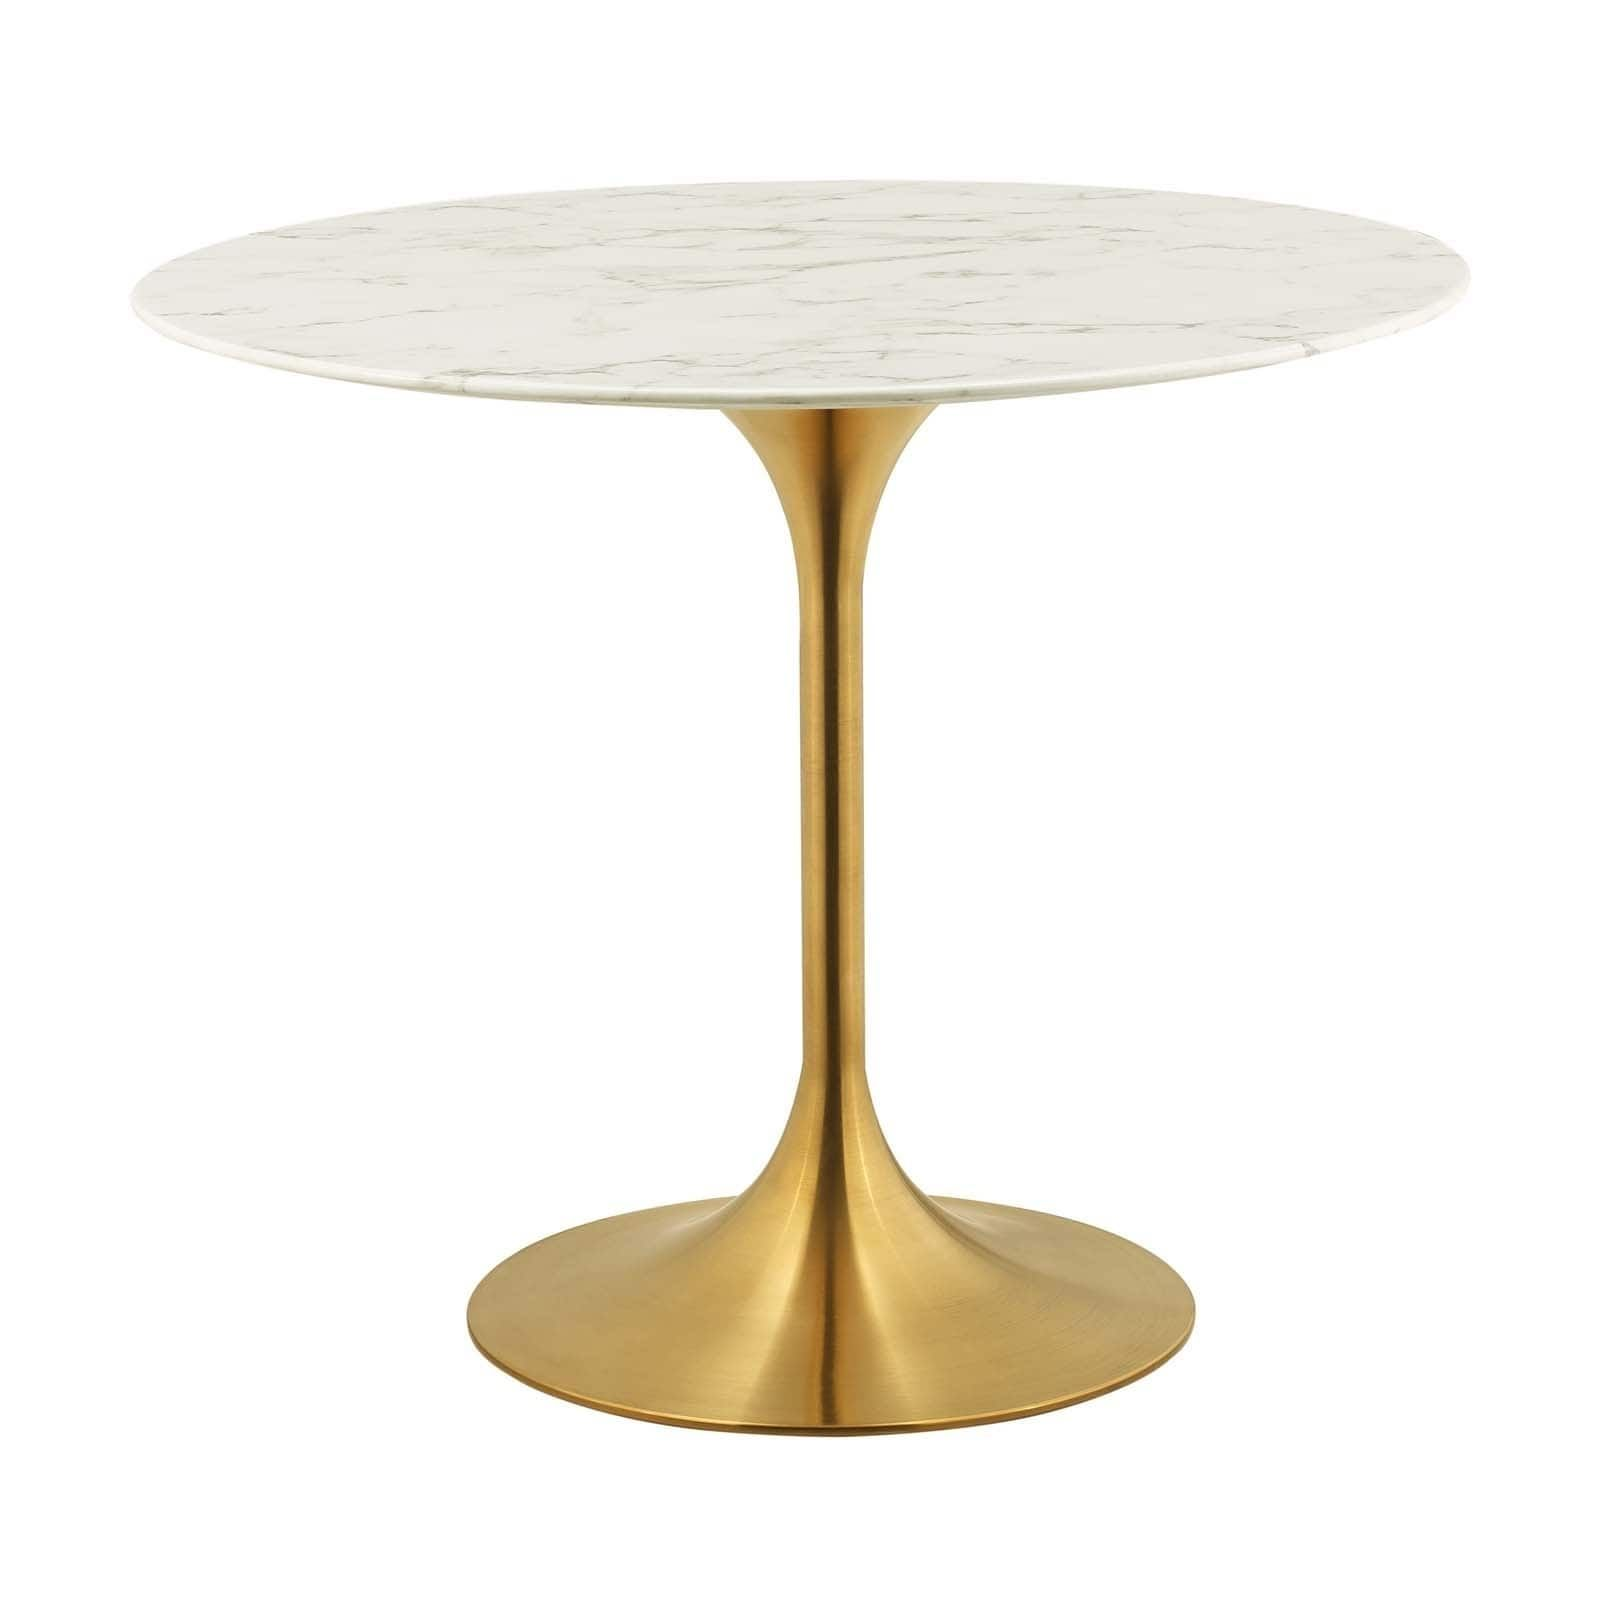 Lippa 36 Round Dining Table Gold White Modway Dining Table Marble 36 Round Dining Table Dining Table Gold